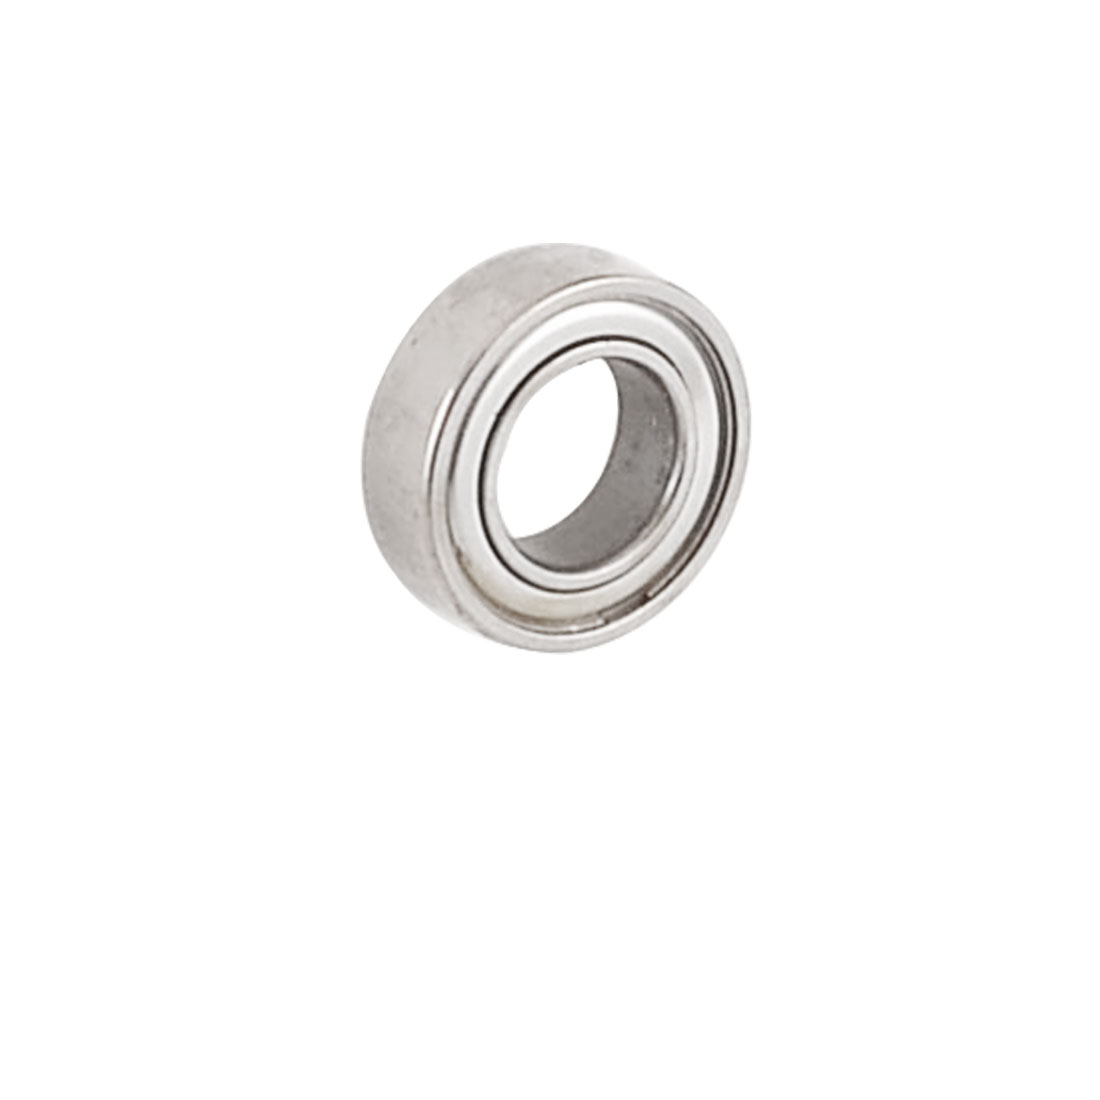 13mm x 7mm x 4mm Shielded Deep Groove Ball Shaft Bearing Silver Tone